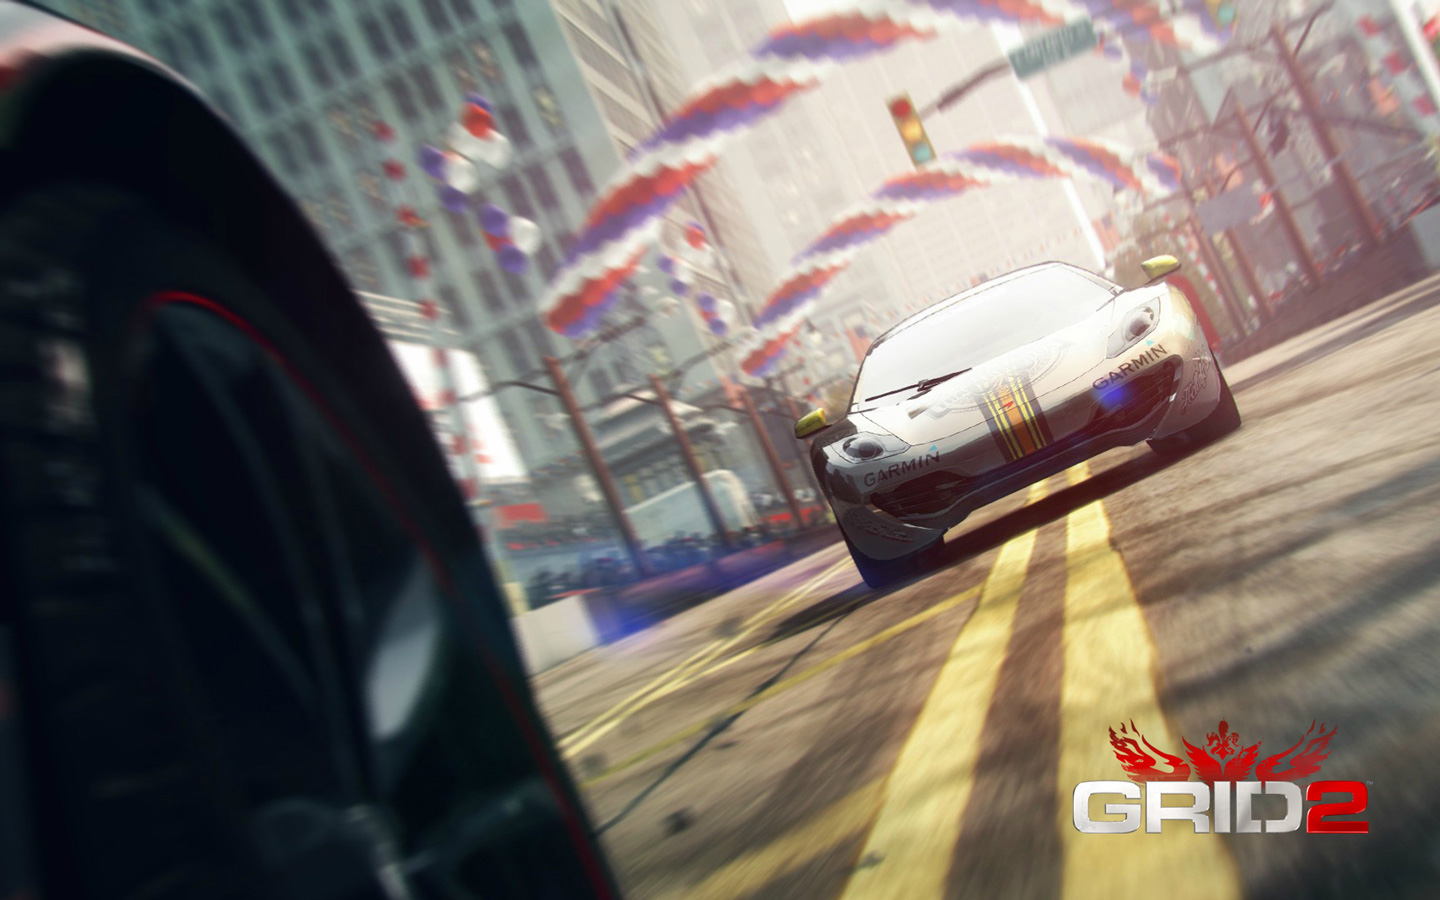 Free GRID 2 Wallpaper in 1440x900